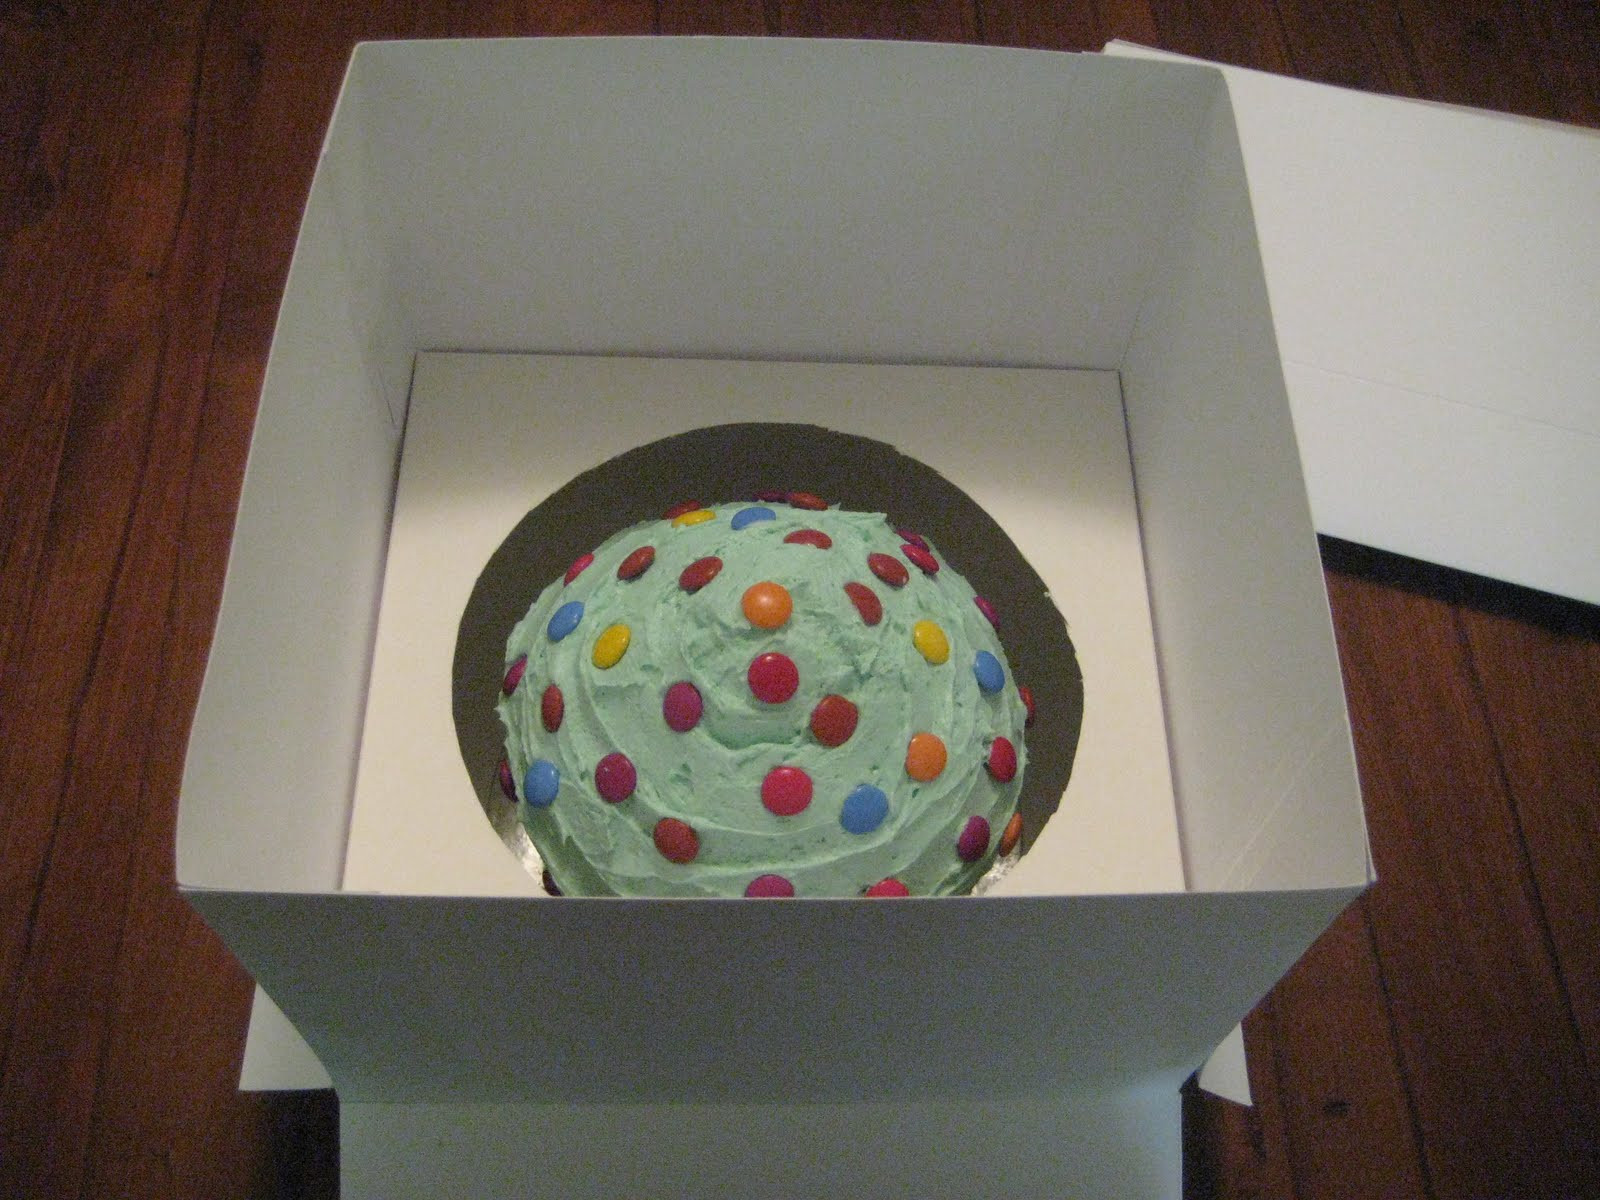 Best ideas about DIY Cake Box . Save or Pin Cavey Cakes DIY cake box for Giant Cupcake Now.